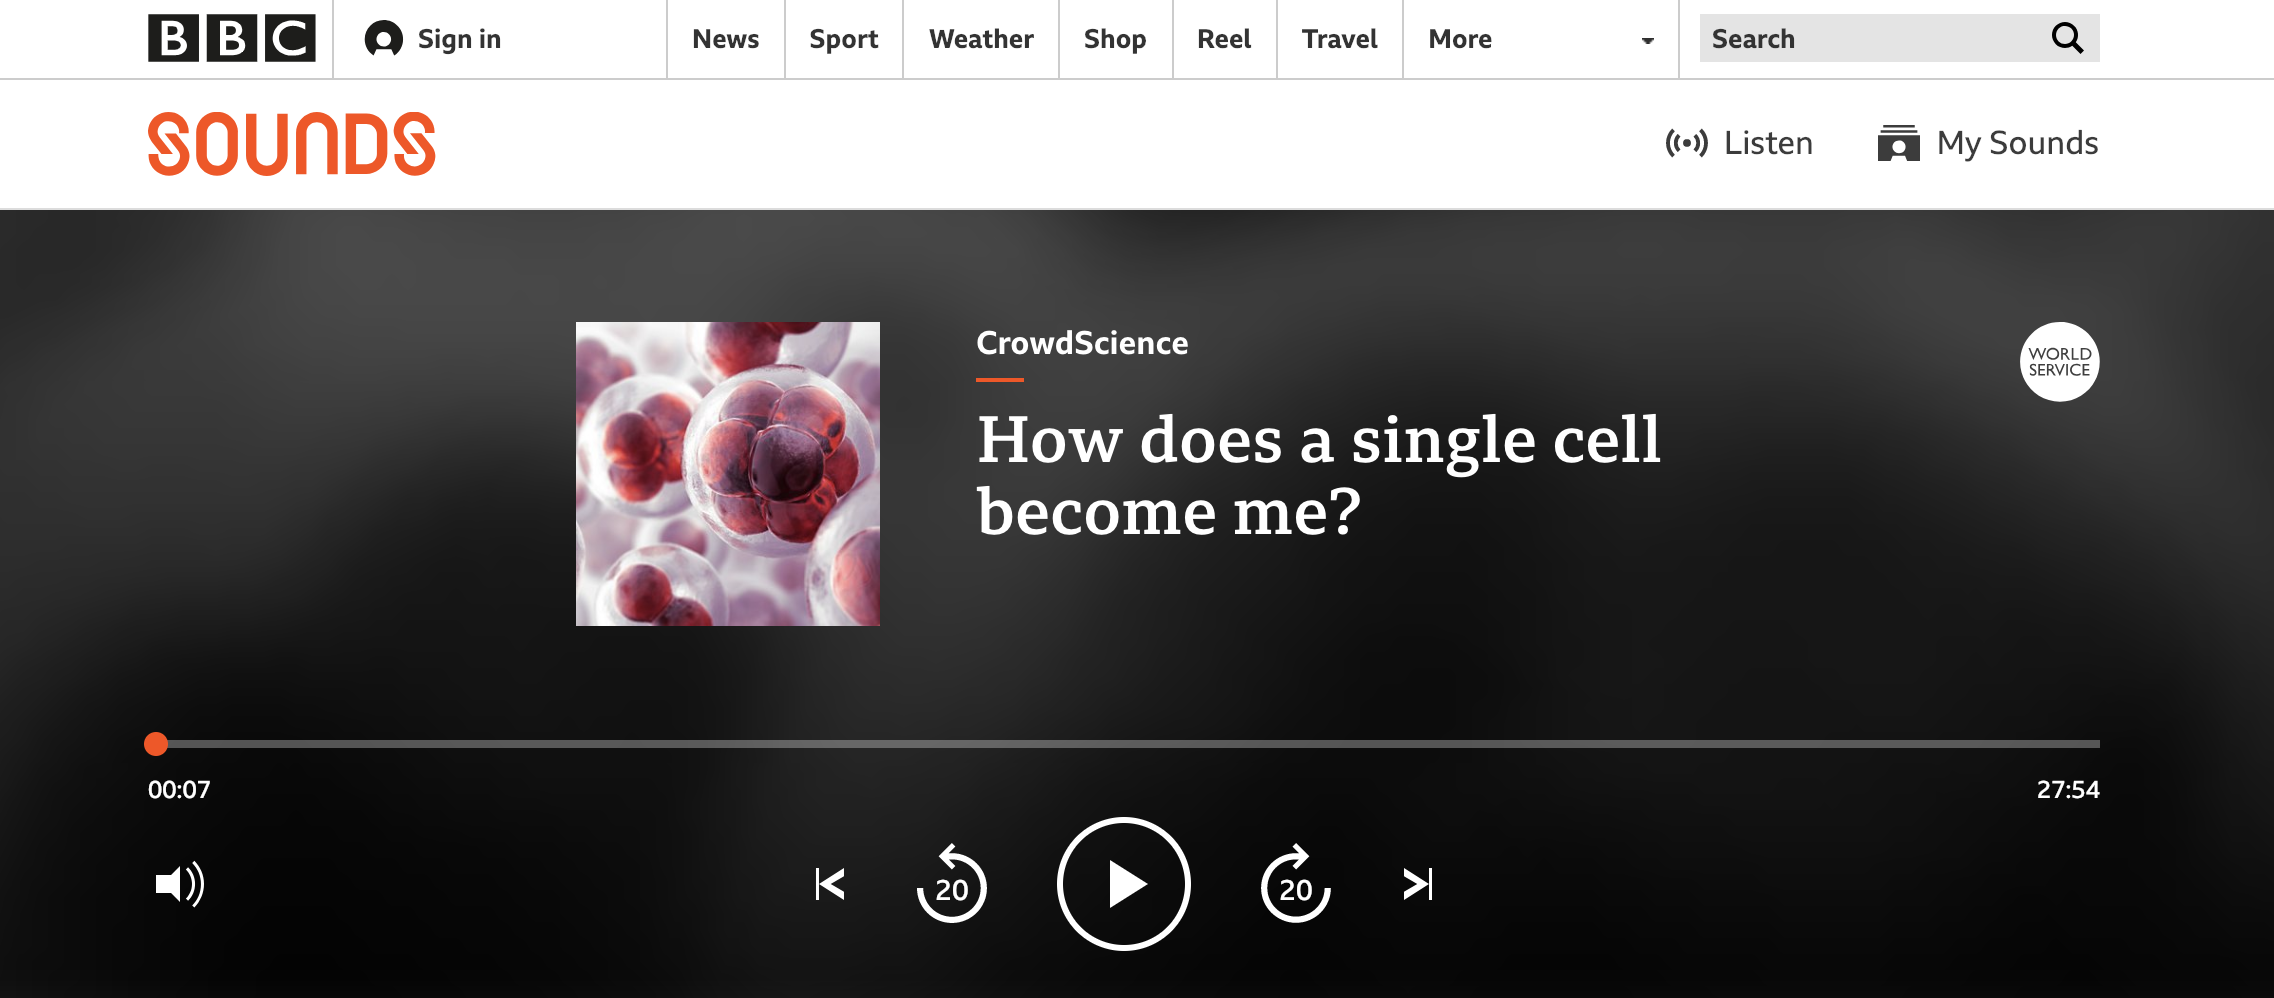 How does a single cell become me?